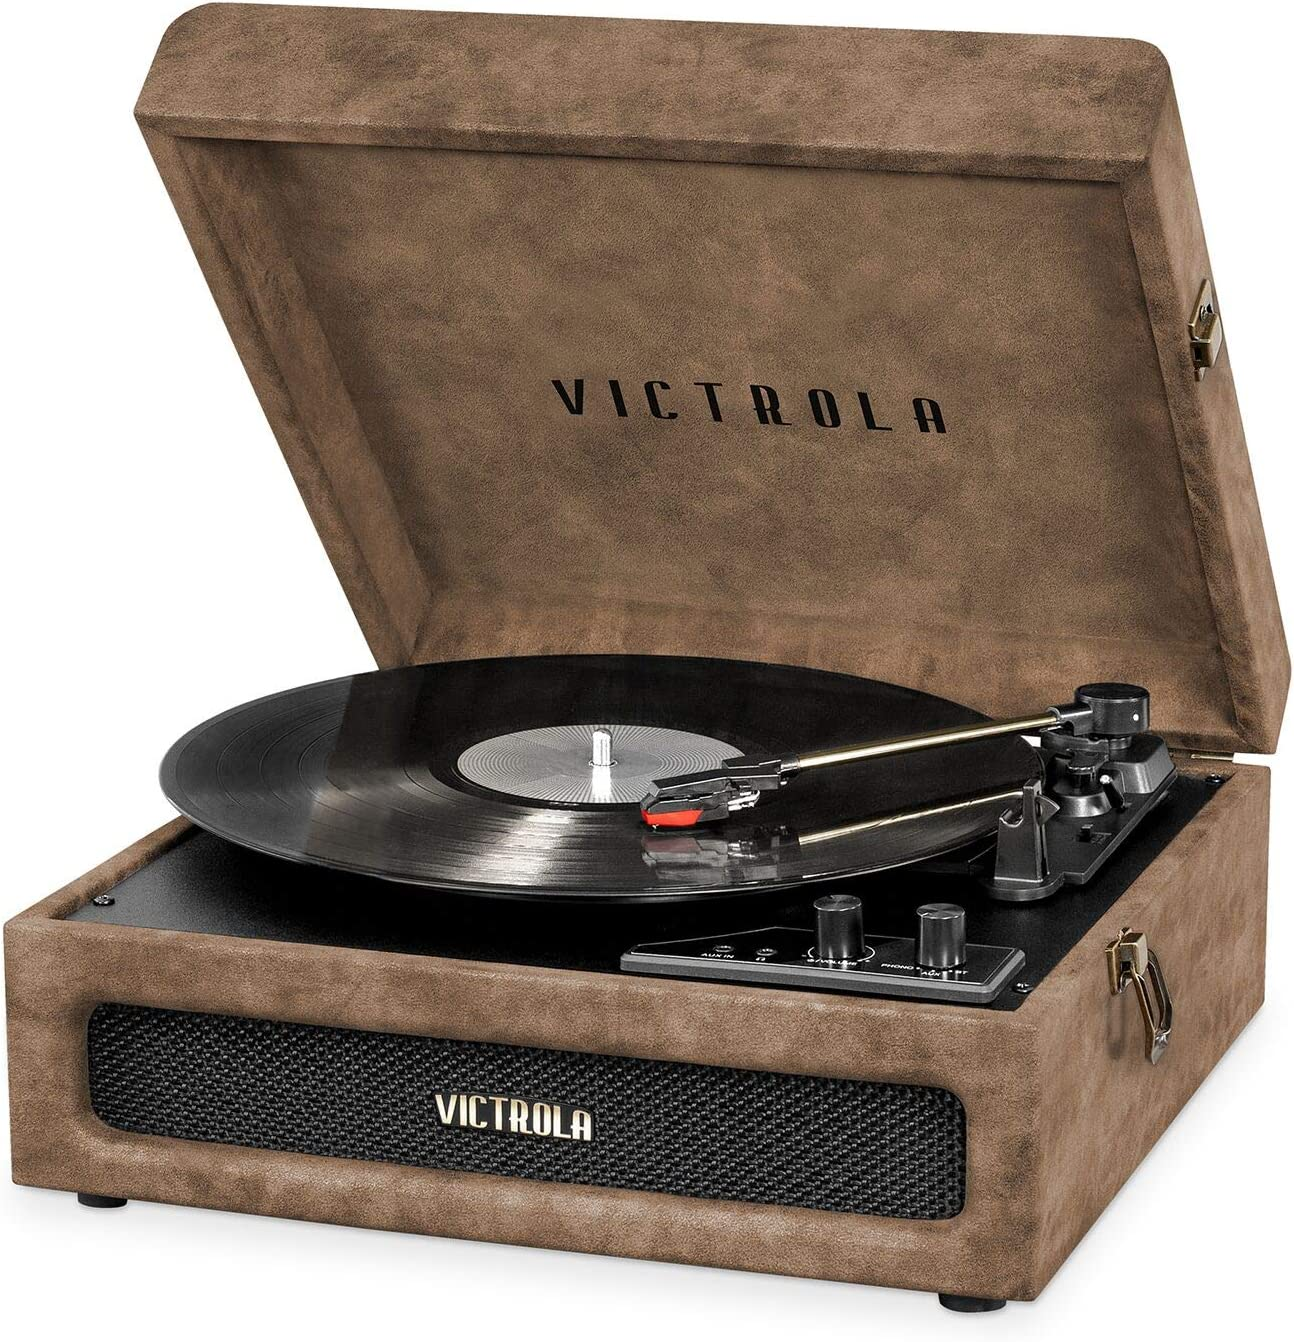 Victrola 3-in-1 Bluetooth Suitcase Record Player with 3-Speed Turntable